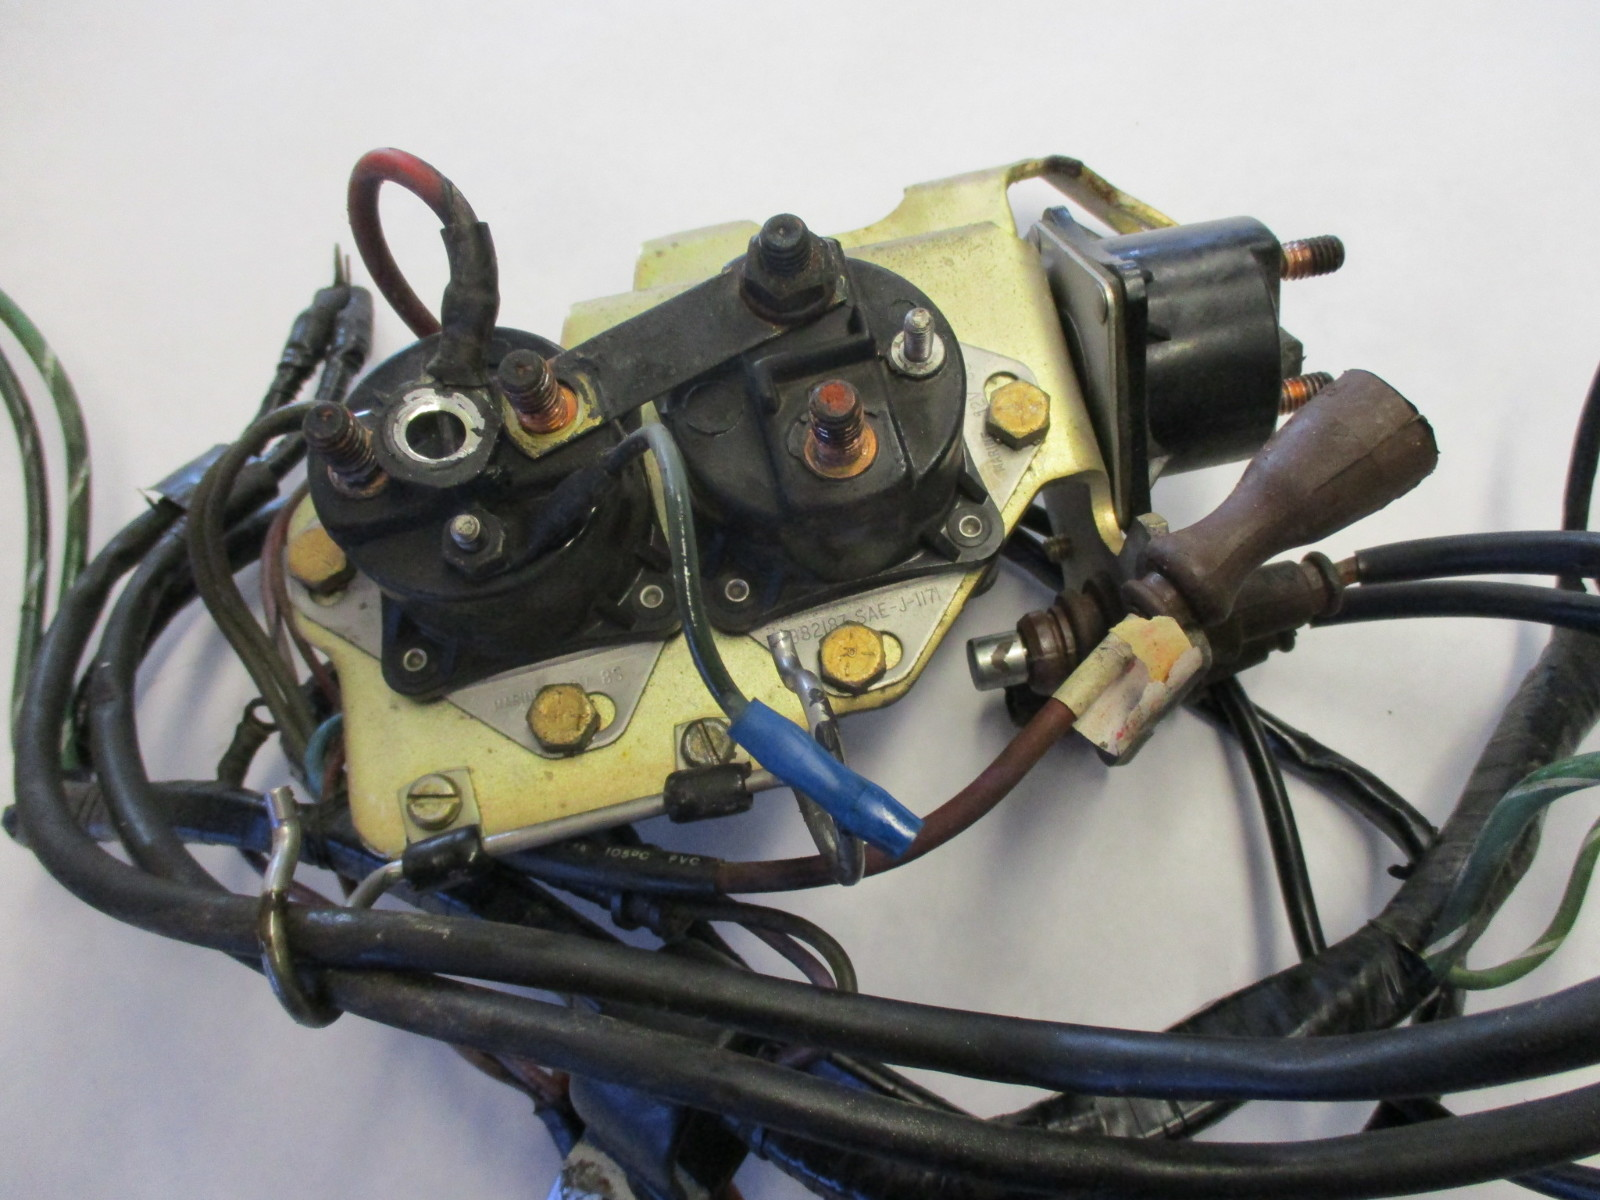 wiring harness bracket omc stringer v8 chevy engine wire harness brackets solenoids  omc stringer v8 chevy engine wire